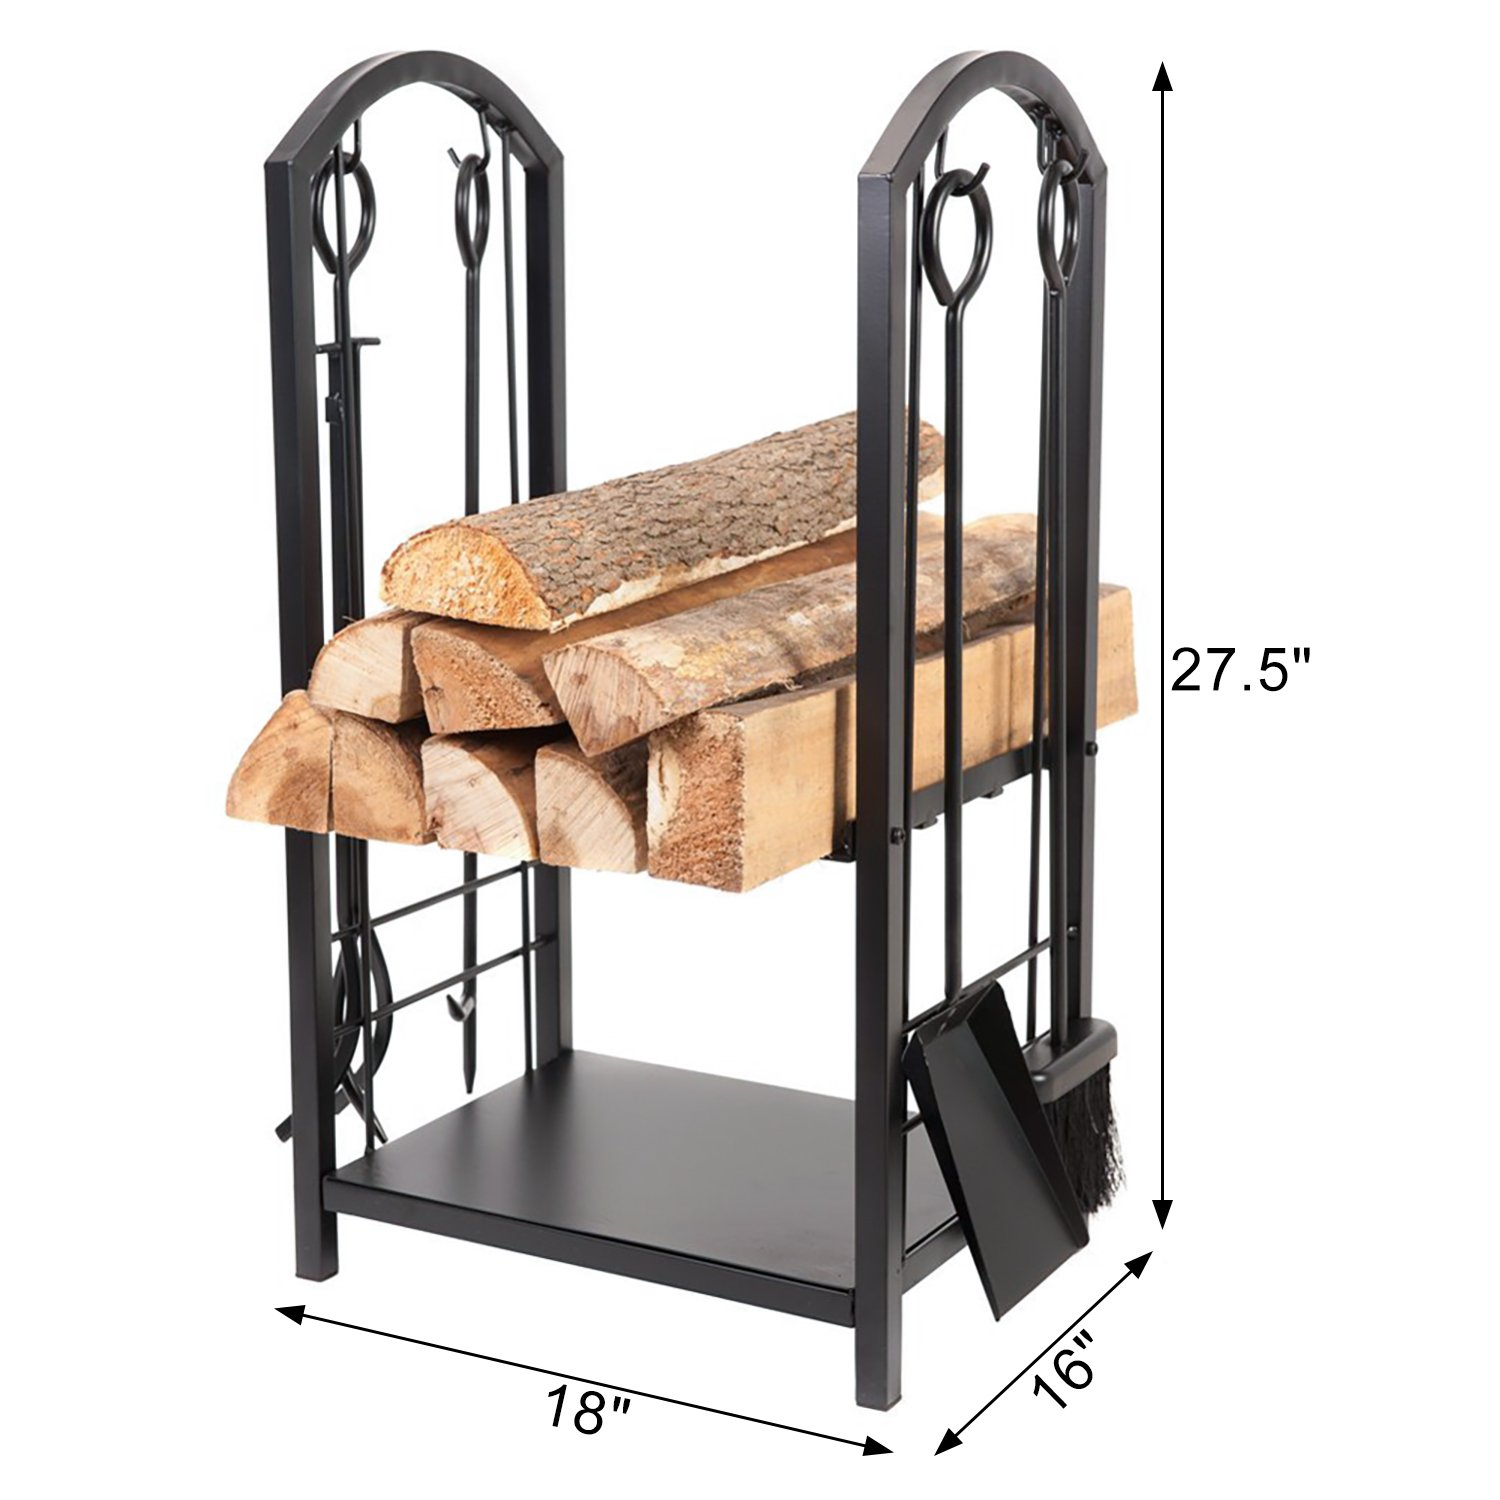 HollyHOME All-In-One Heavy Duty Hearth Firewood Rack With Fireplace Tools Set, 18''Wide x 27.5''Tall Log Holder, Black